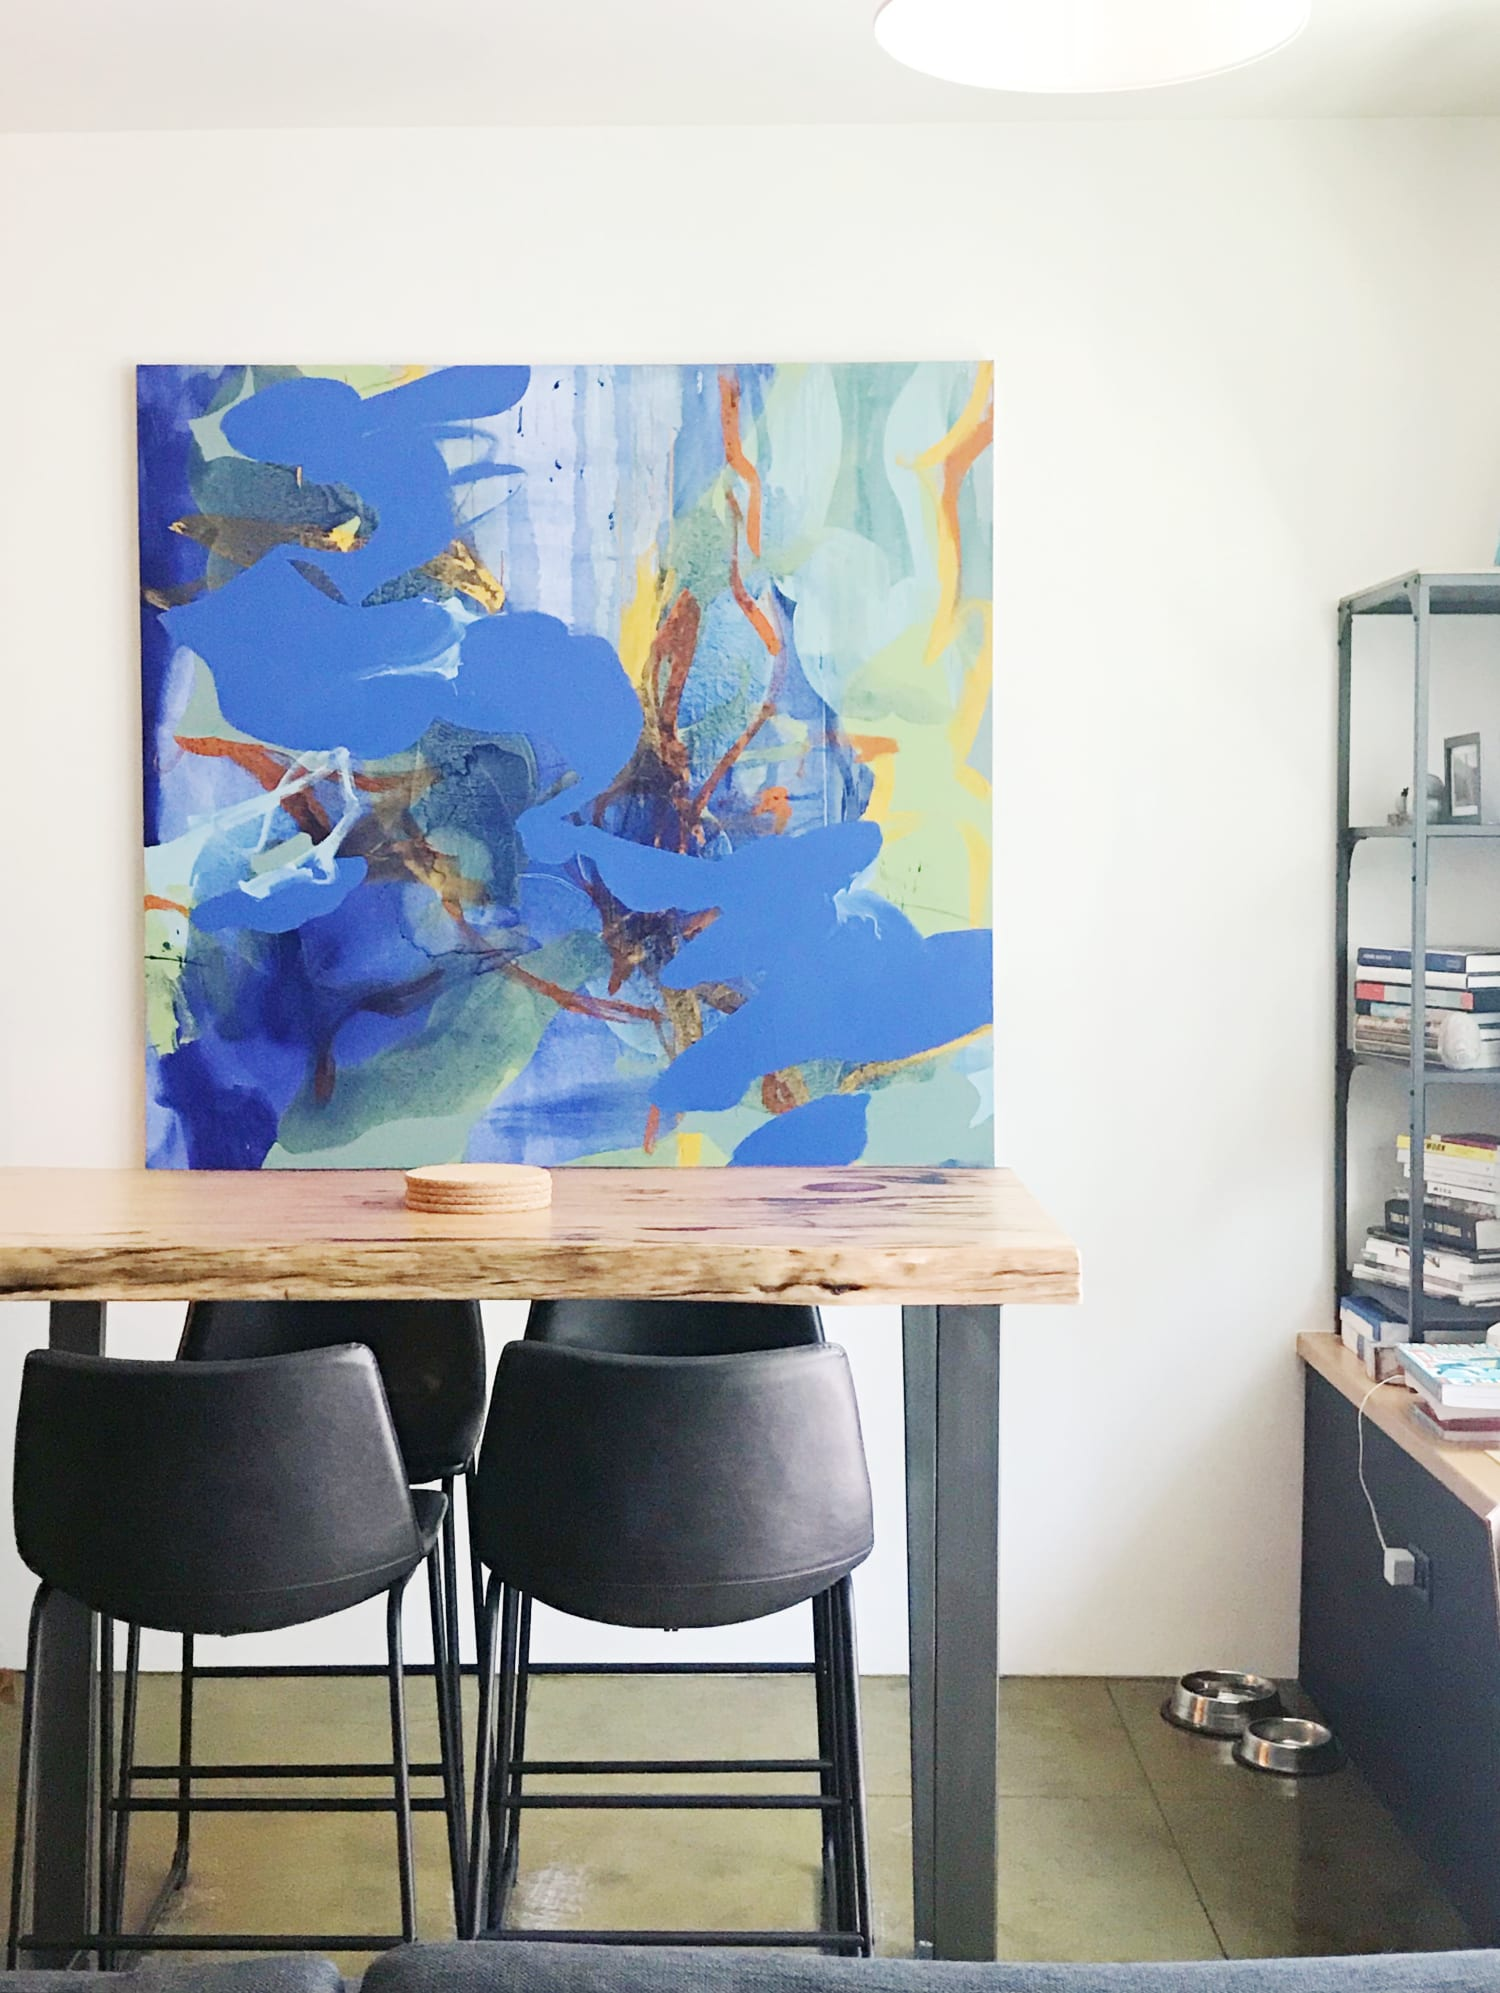 Blue with yellow abstract painting